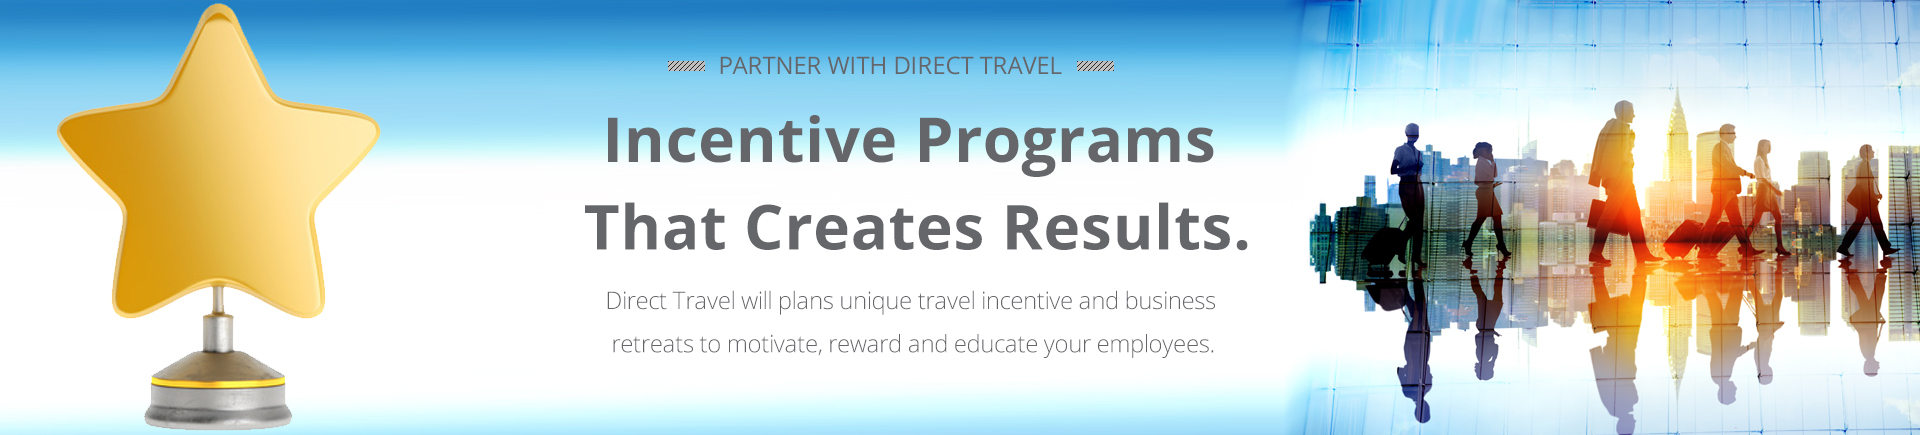 corp-incentive-banner